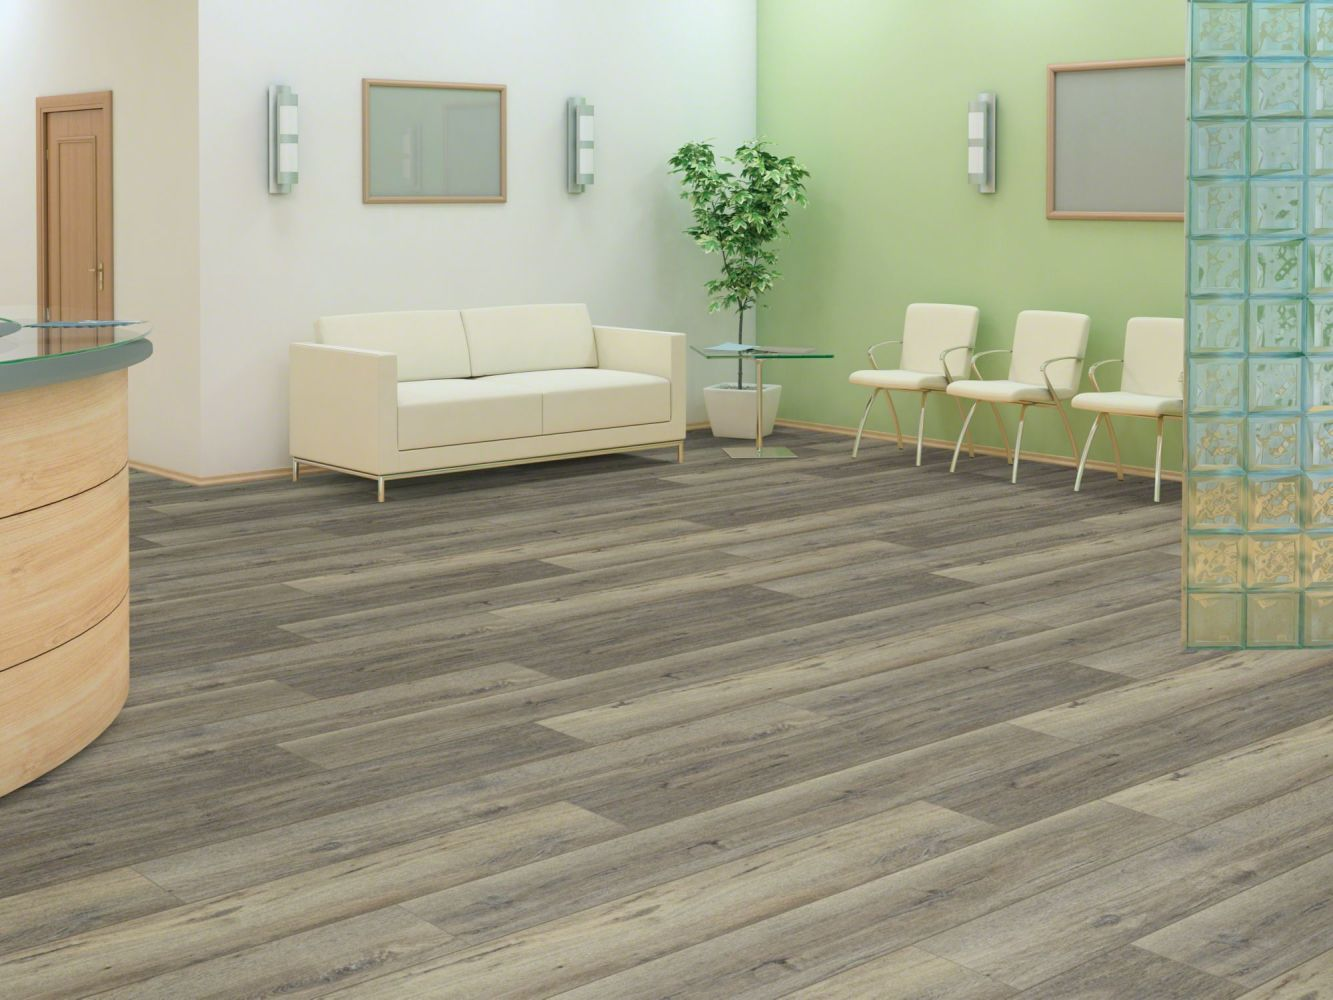 Shaw Floors Resilient Residential Aged Oak 720c Plus Sandy Oak 05005_517SA